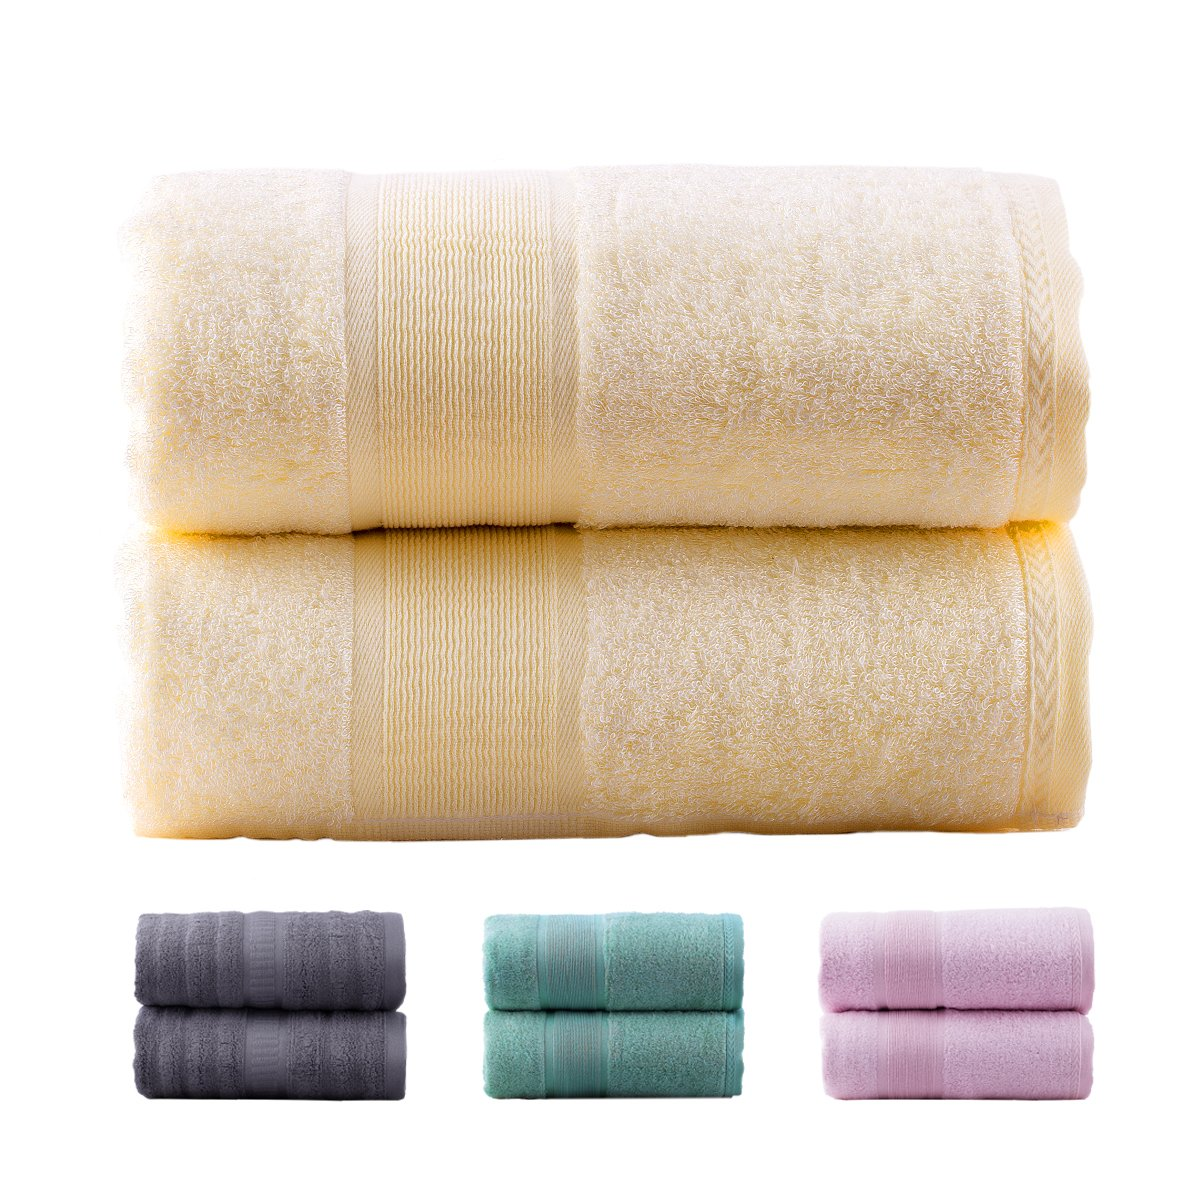 Jml Bamboo Bath Towels | 2 Piece Luxury Bath Towel Set for Bathroom(27x54) Antibacterial and Hypoallergenic, Soft and Absorbent, Odor Resistant, Skin Friendly(Pink)